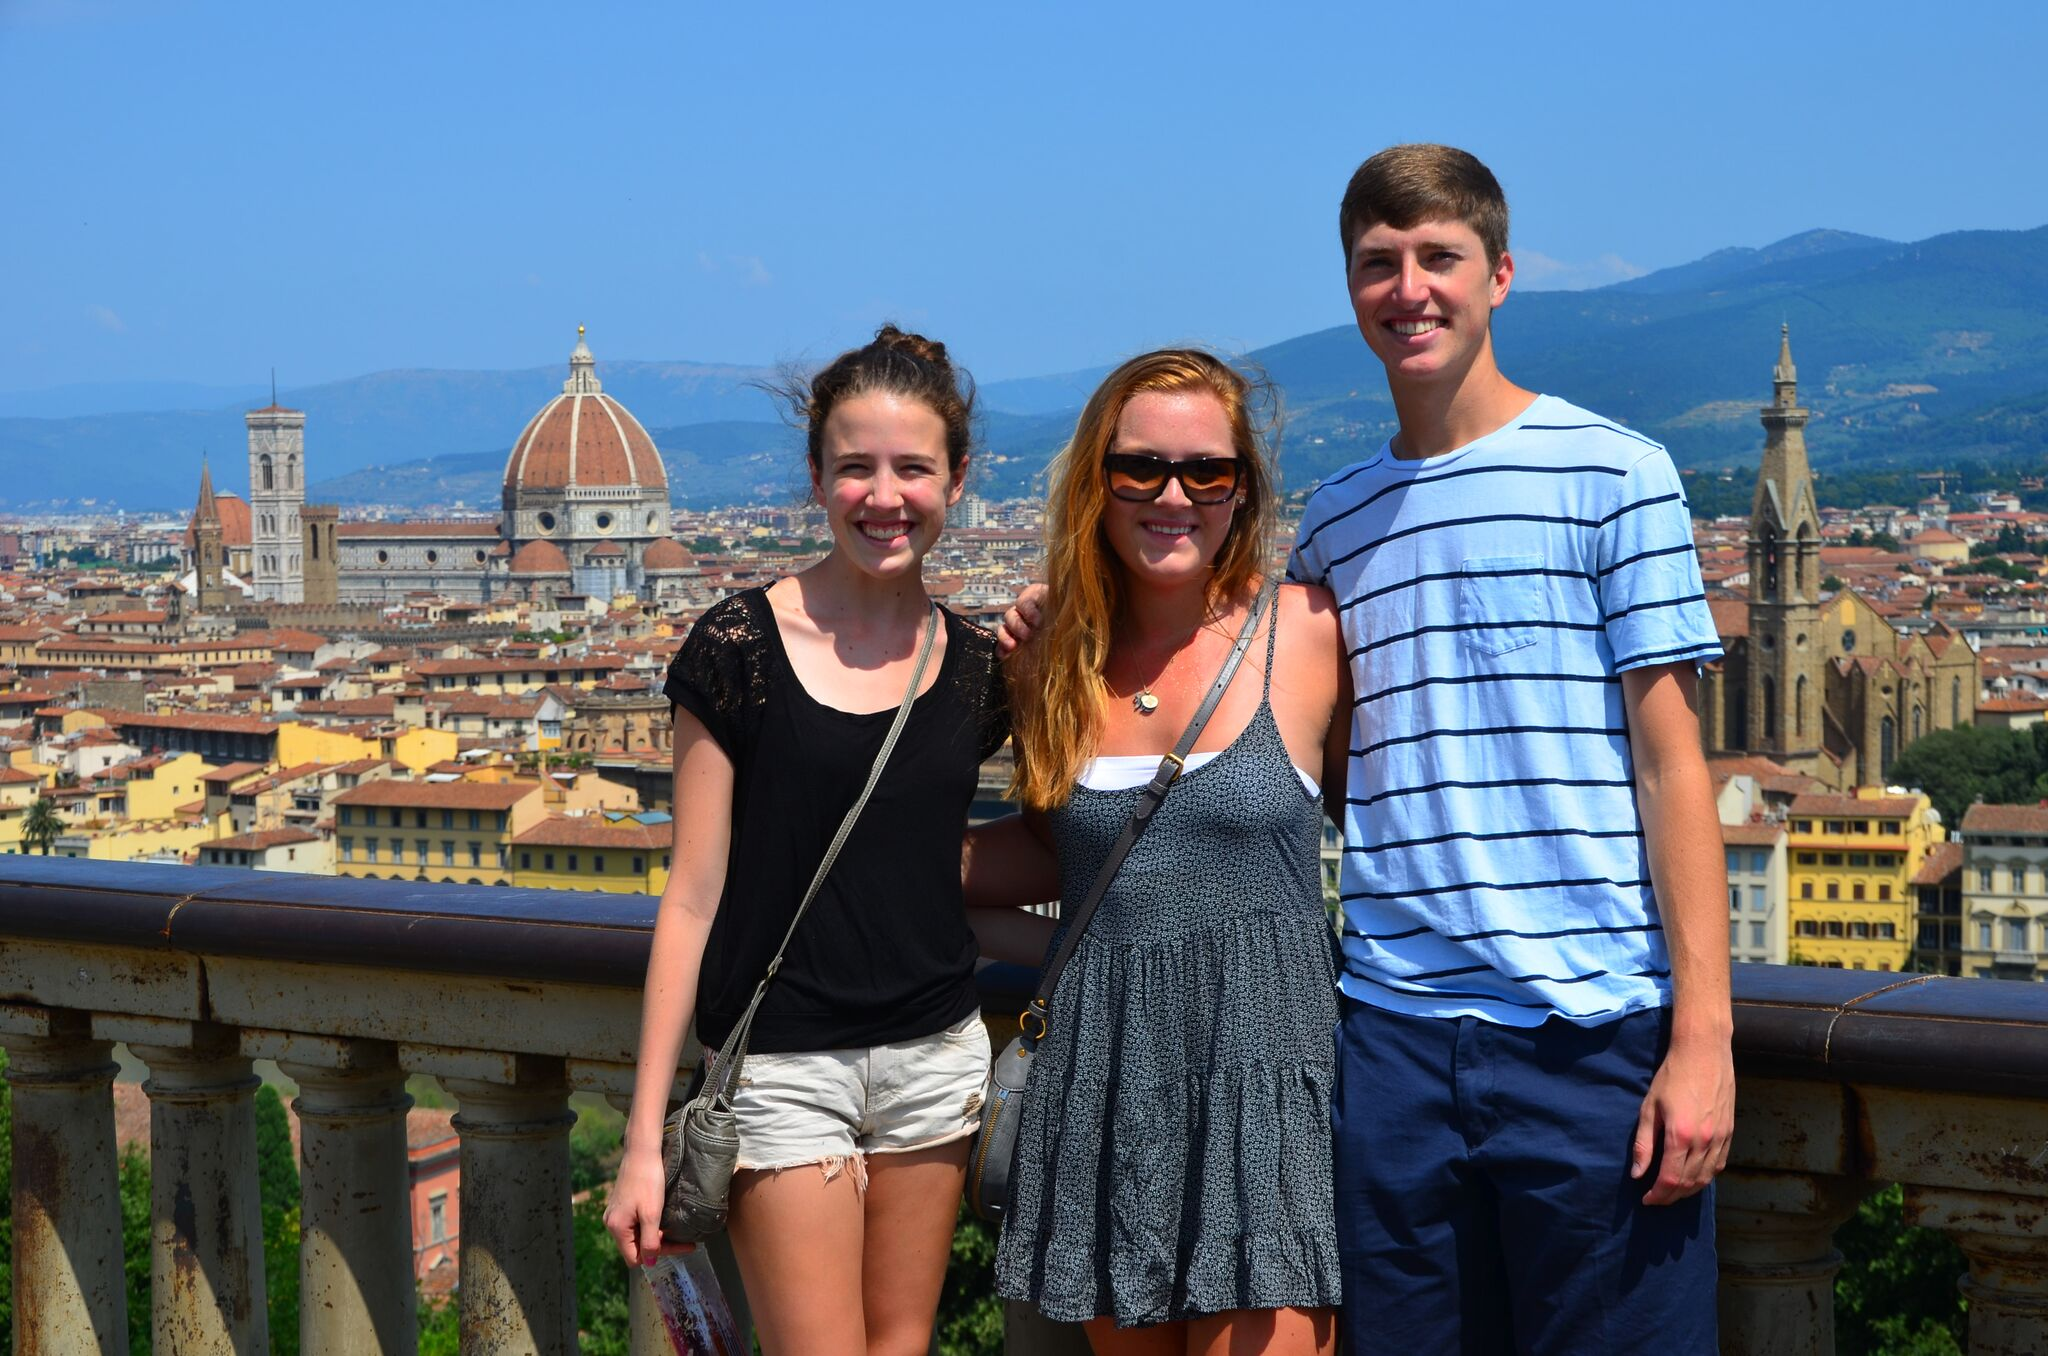 Summer Program - Adventure/Trips | Travel For Teens: Europe for Older Teens - Florence, Cinque Terre, Switzerland and Paris